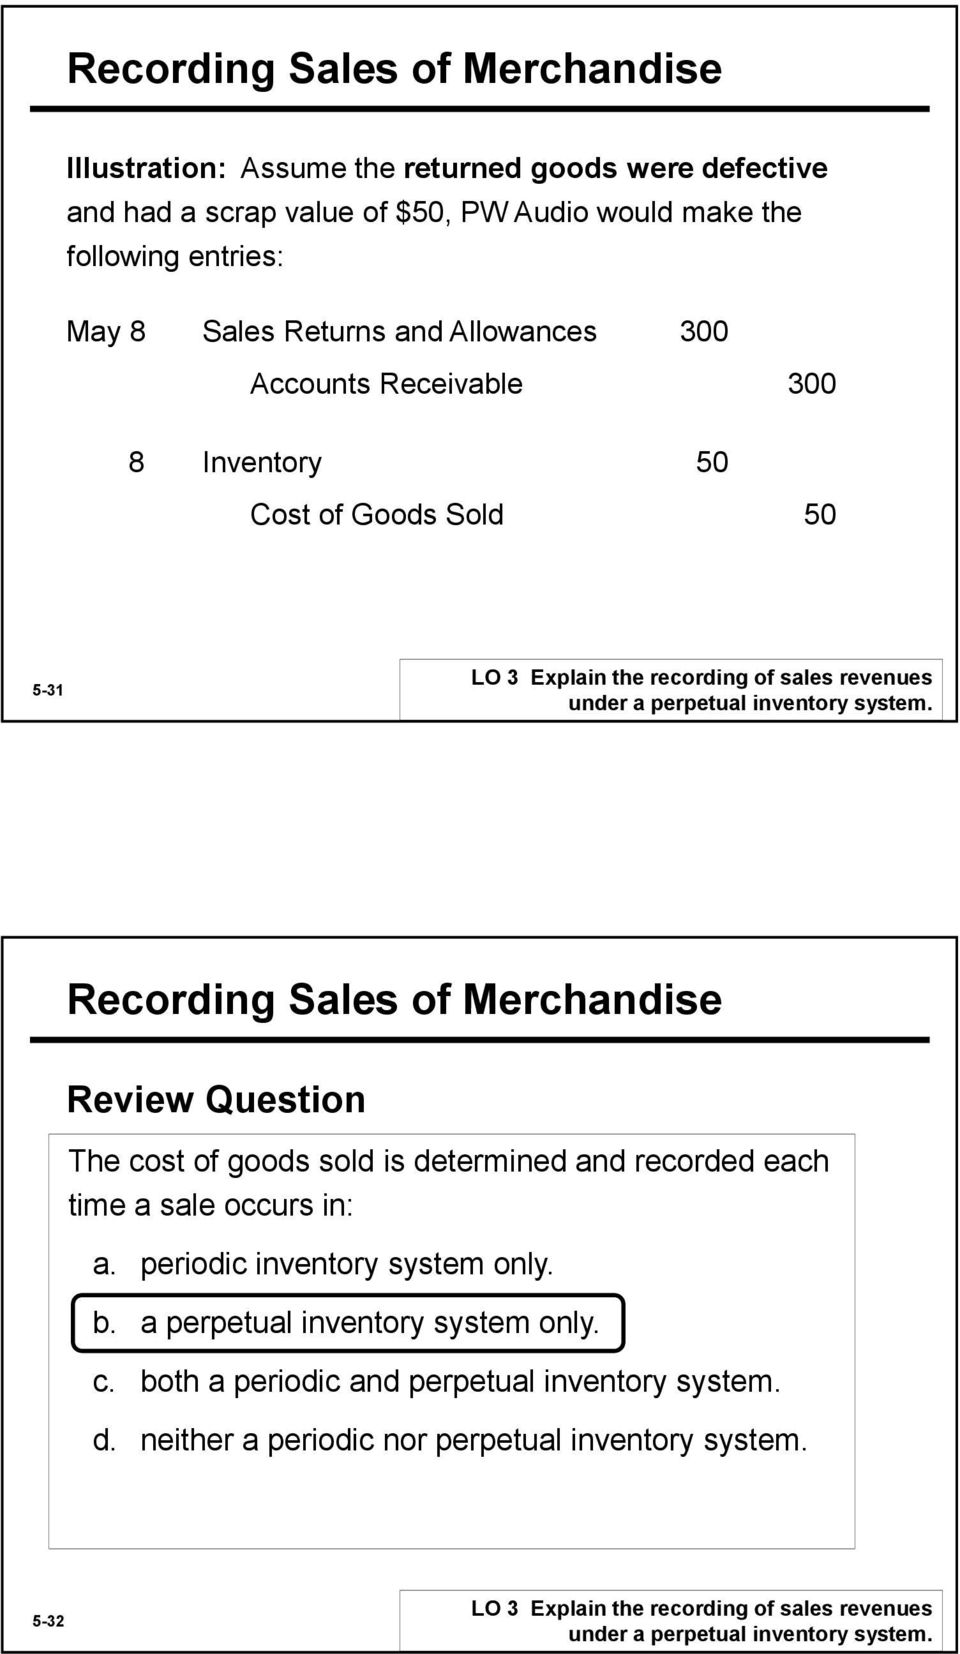 Recording Sales of Merchandise Review Question The cost of goods sold is determined and recorded each time a sale occurs in: a. periodic inventory system only. b.